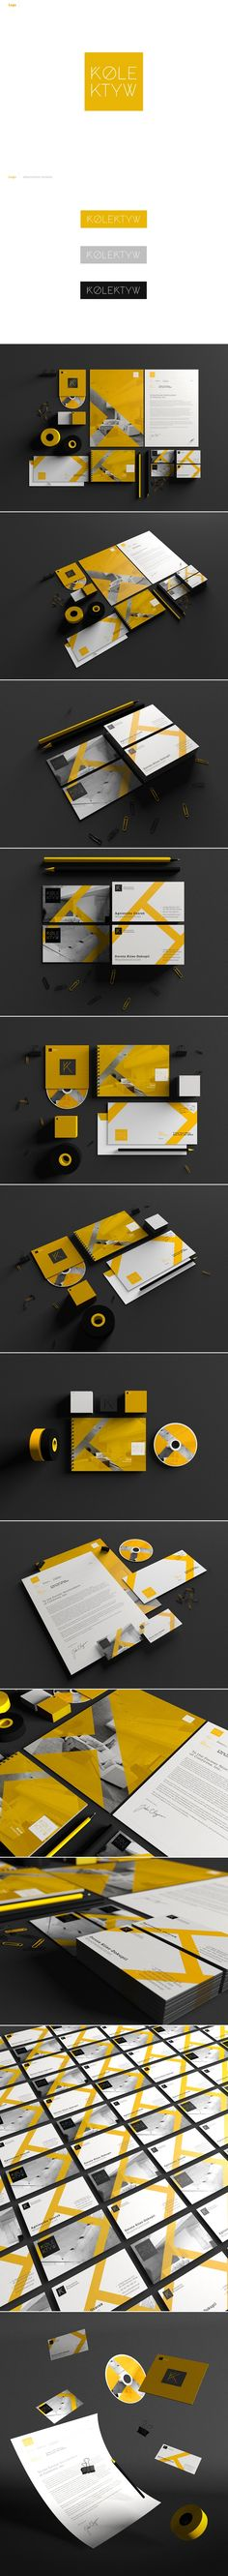 Nice color combo for Kolektyw #identity #packaging #branding PD